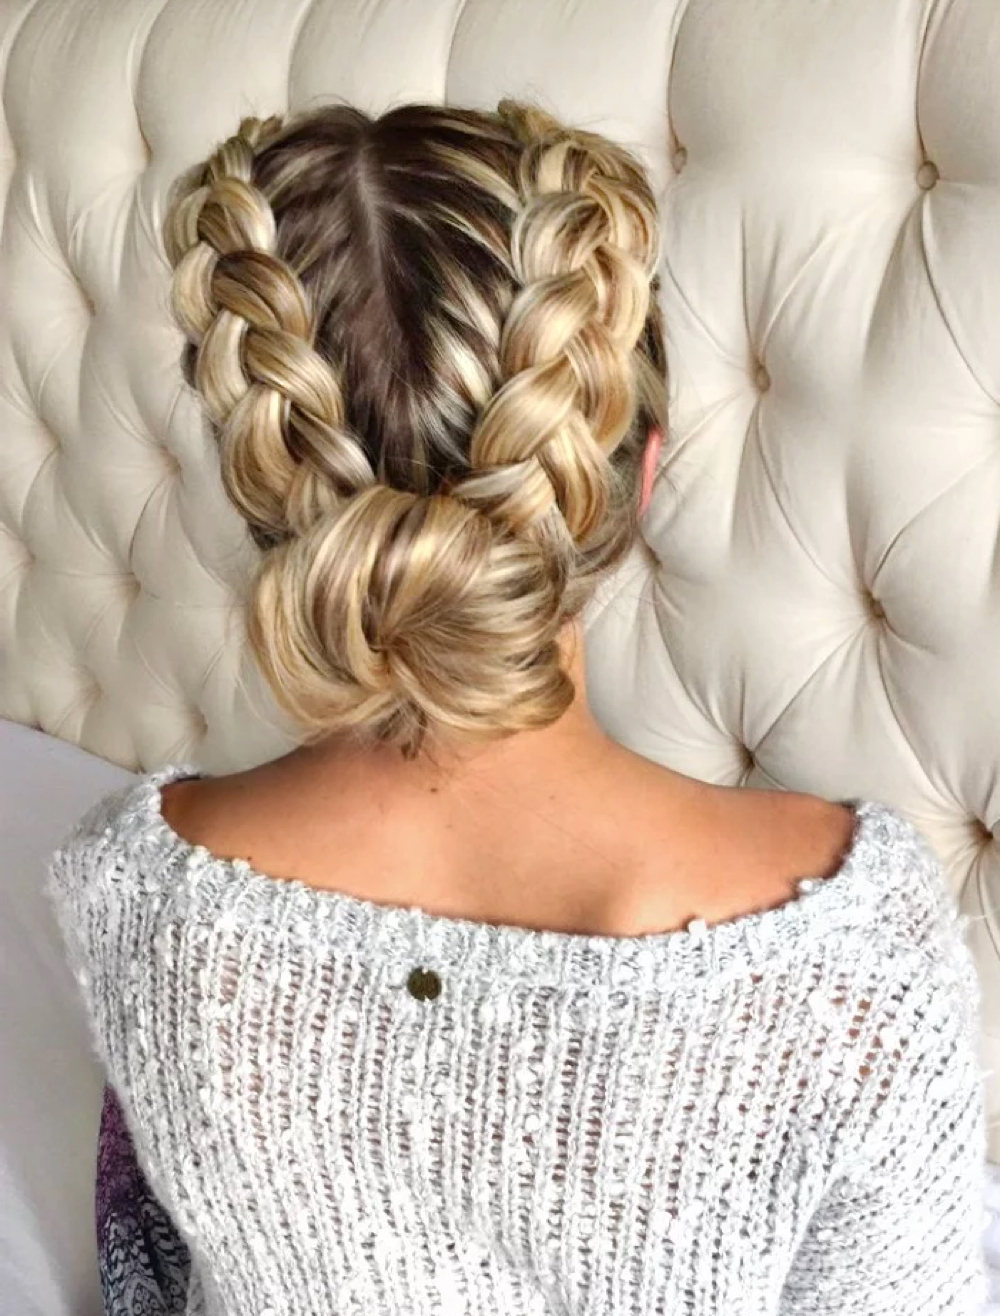 29 Gorgeous Braided Updo Ideas For 2019 Throughout Widely Used Chic Waterfall Braid Prom Updos (Gallery 17 of 20)